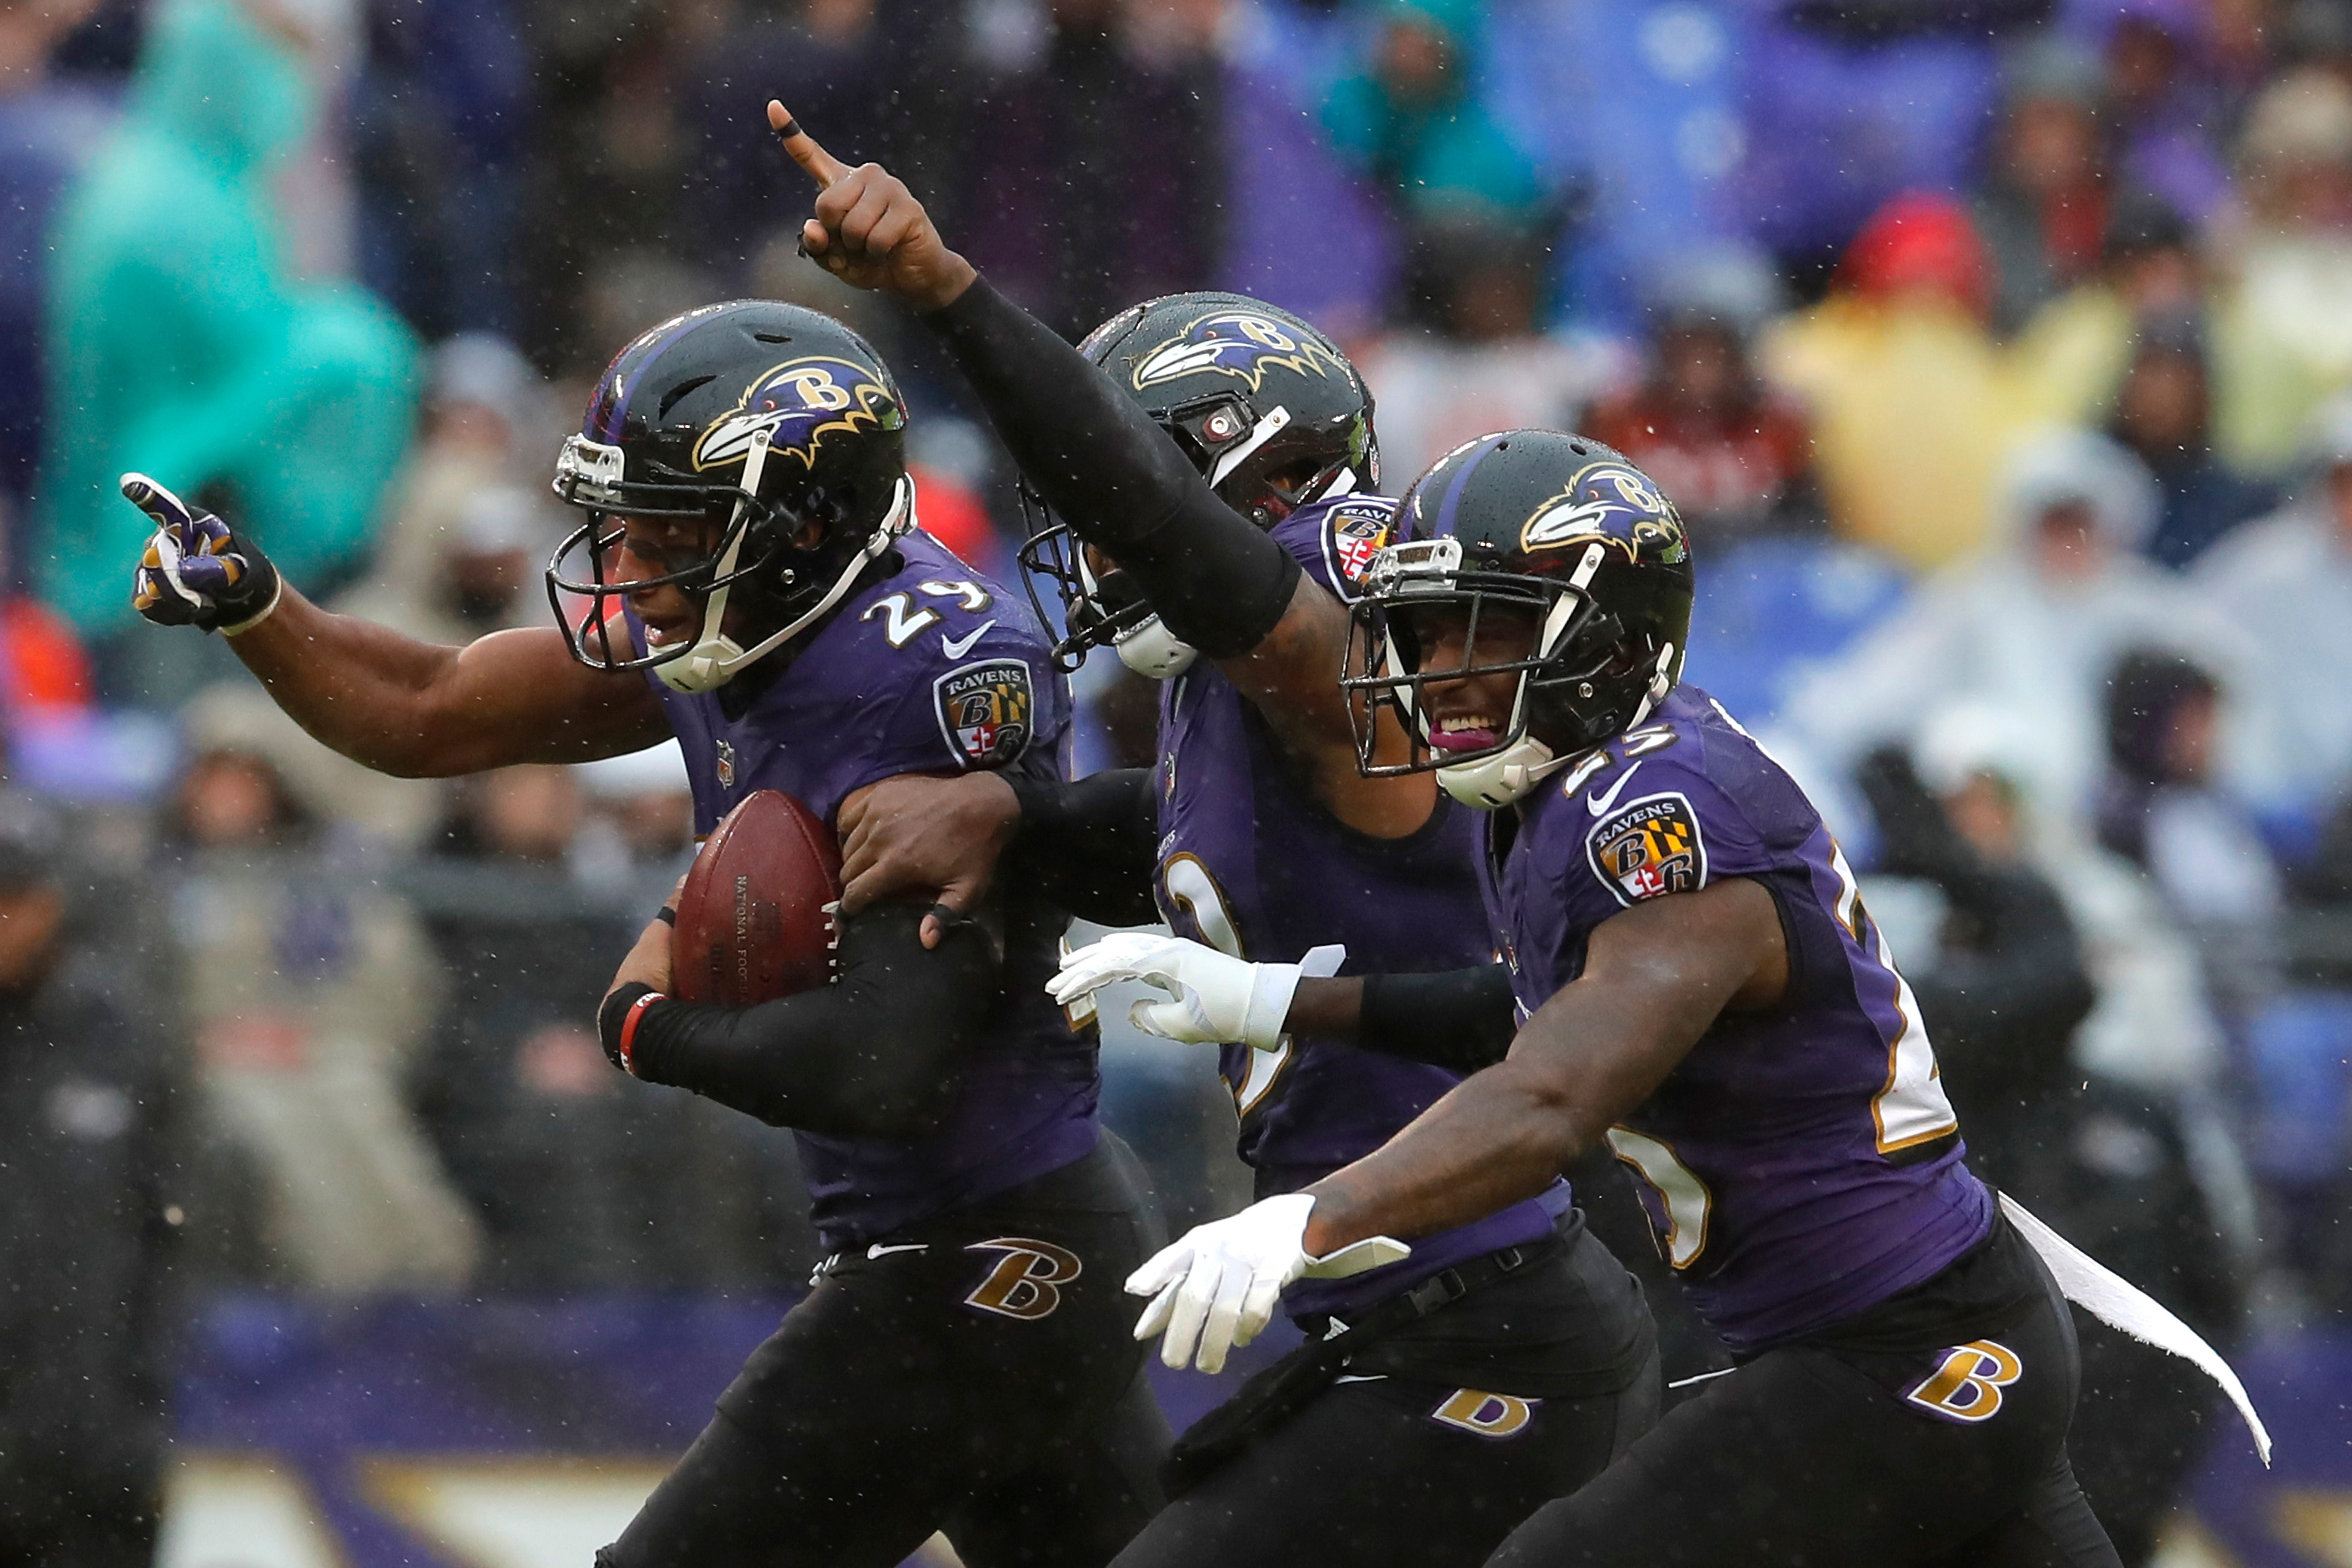 Ravens use running game, defense and ball control to win